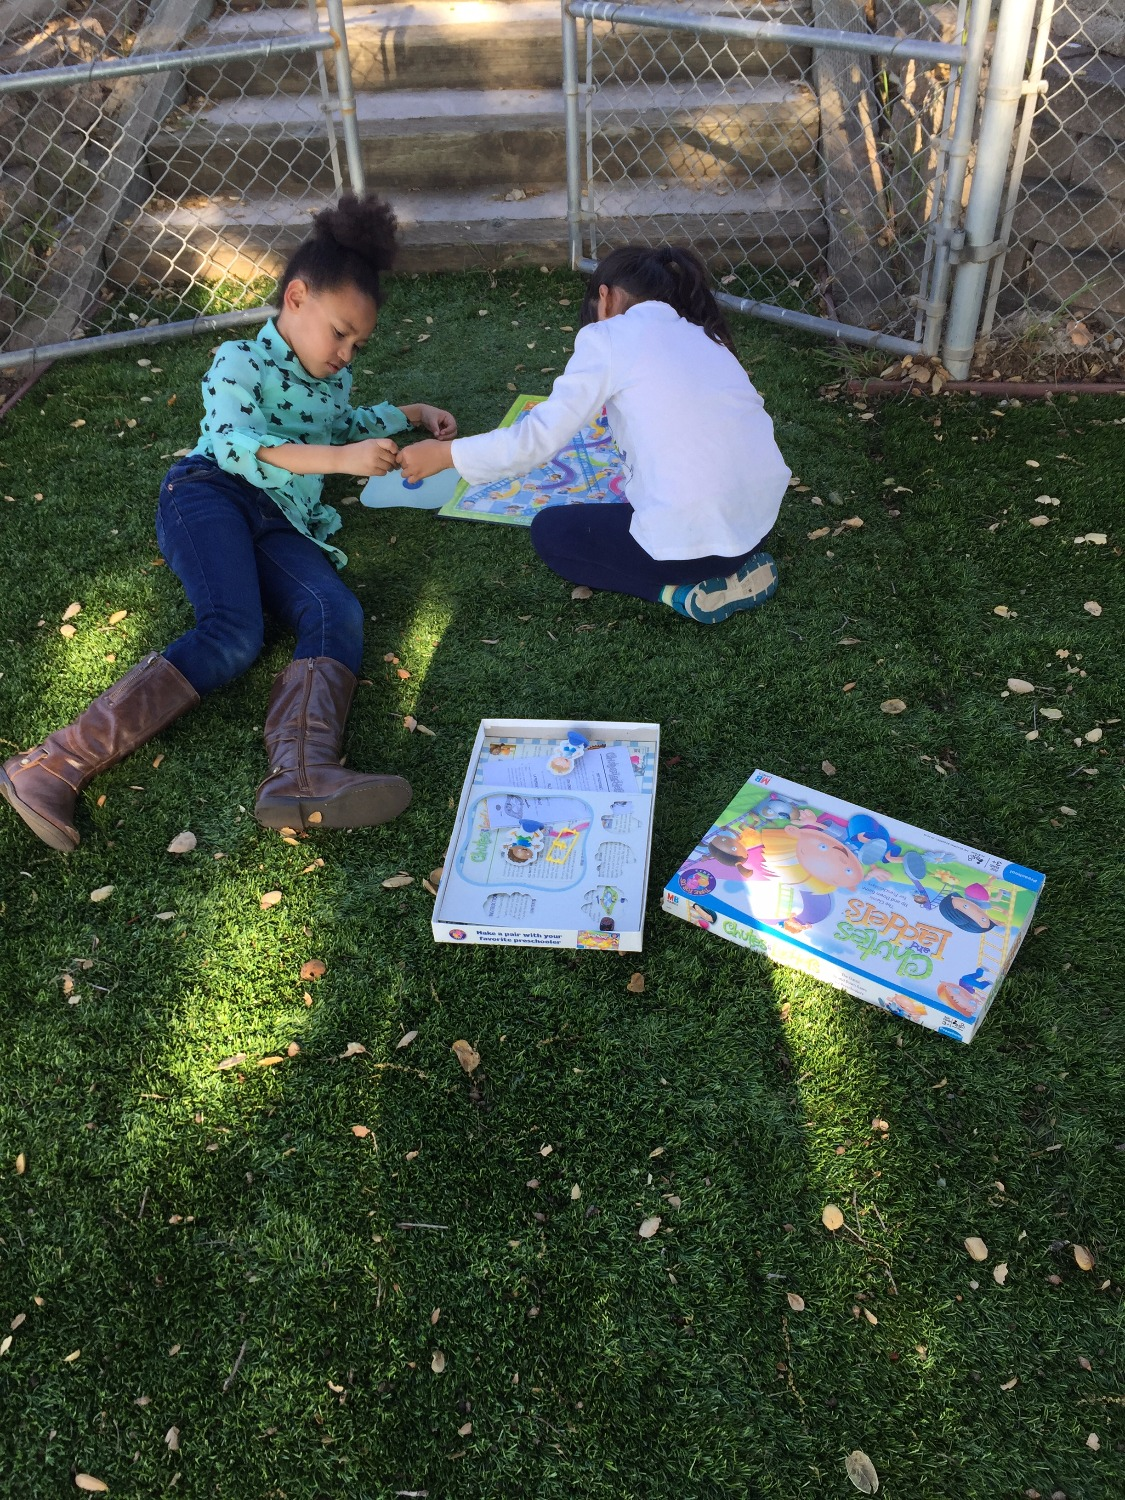 Making friends over board games outdoors